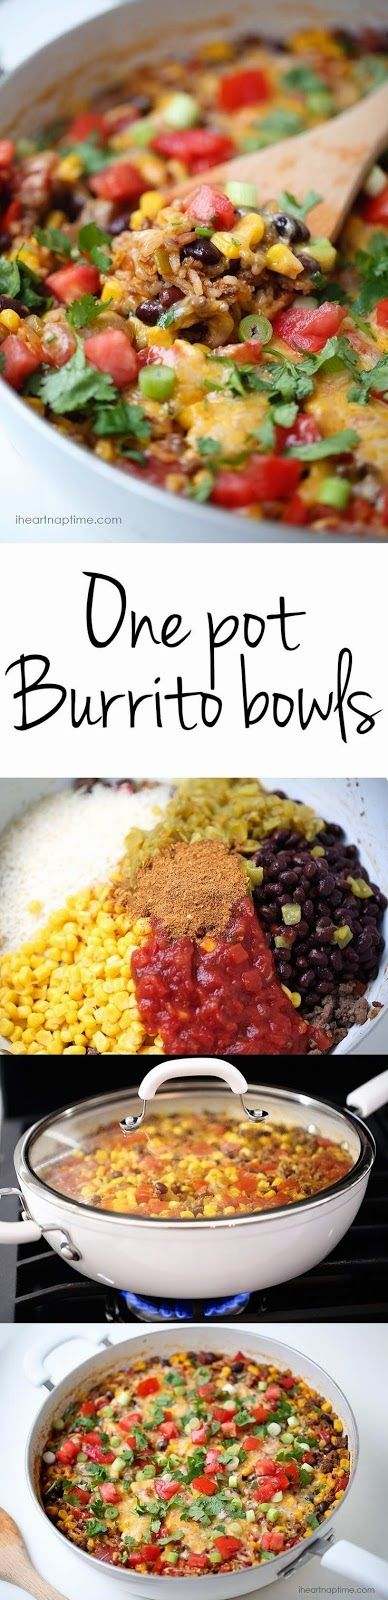 One Pot Burrito Bowls - looks easy and delicious! @iheartnaptime